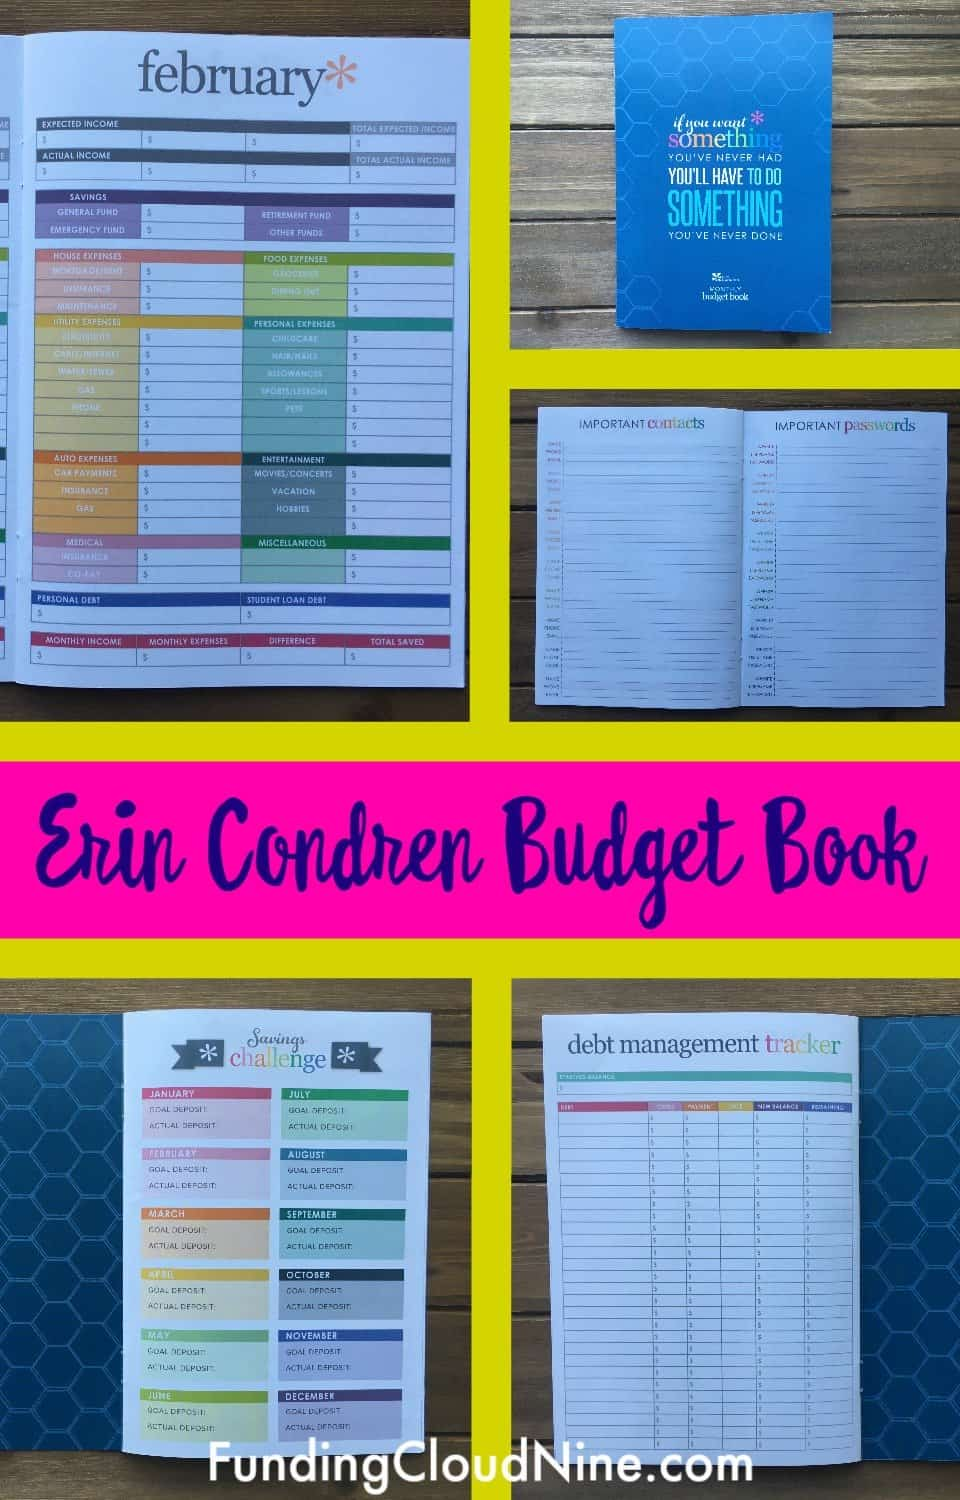 Erin Condren Budget Book Review Is It Right For You